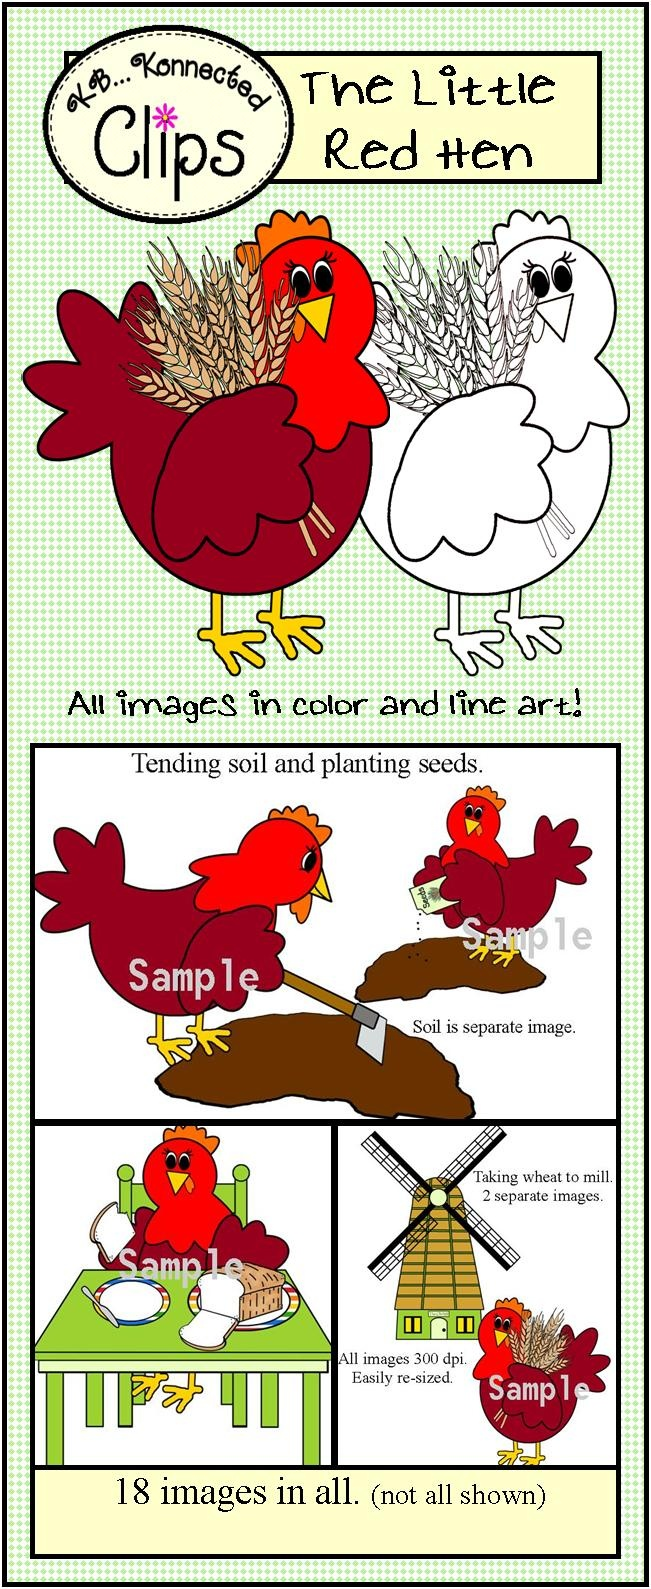 Mill clipart little red hen Images Pinterest The hen best